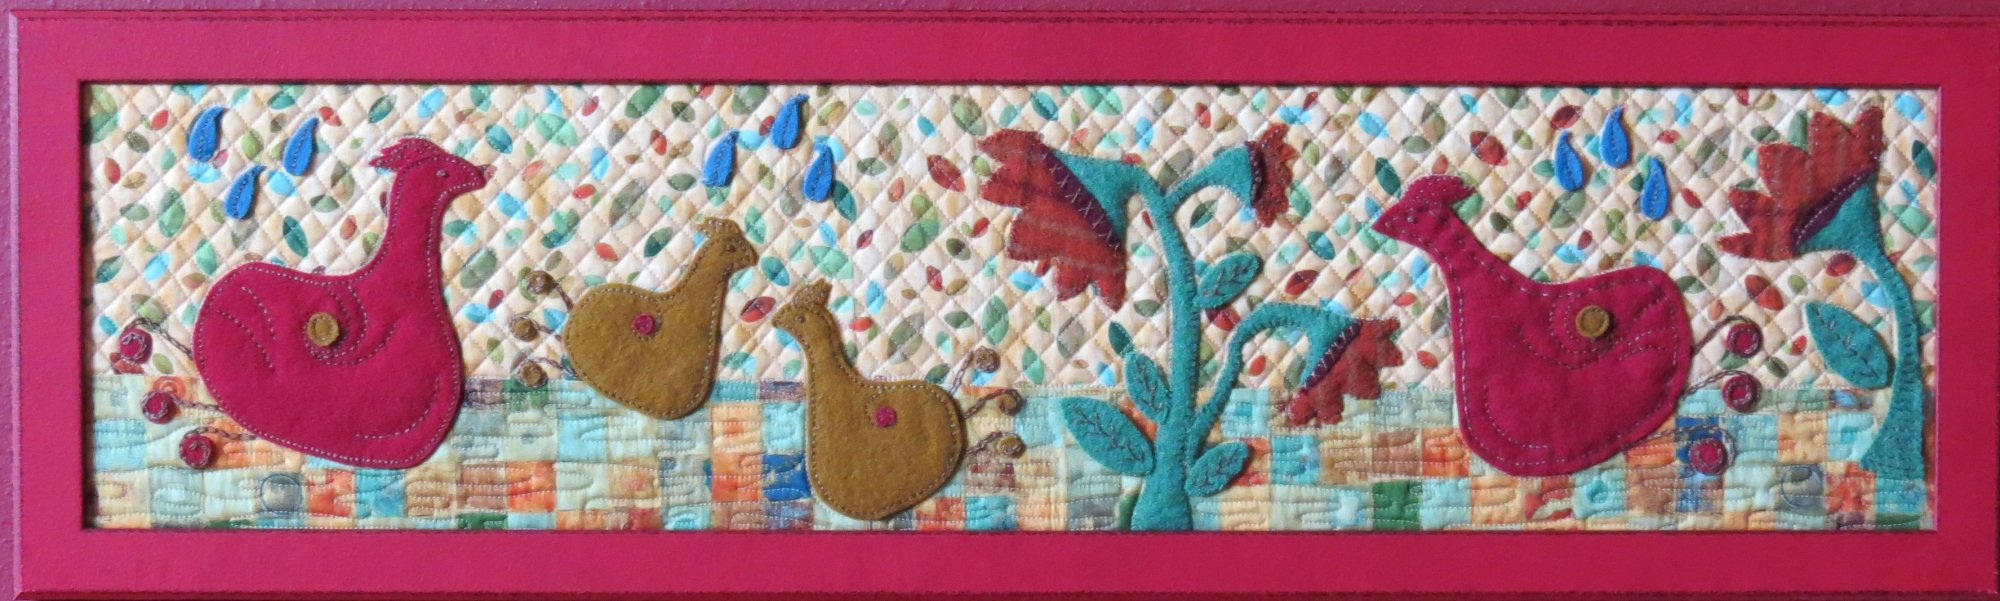 The Happy Chicken Dance Fabric Kit